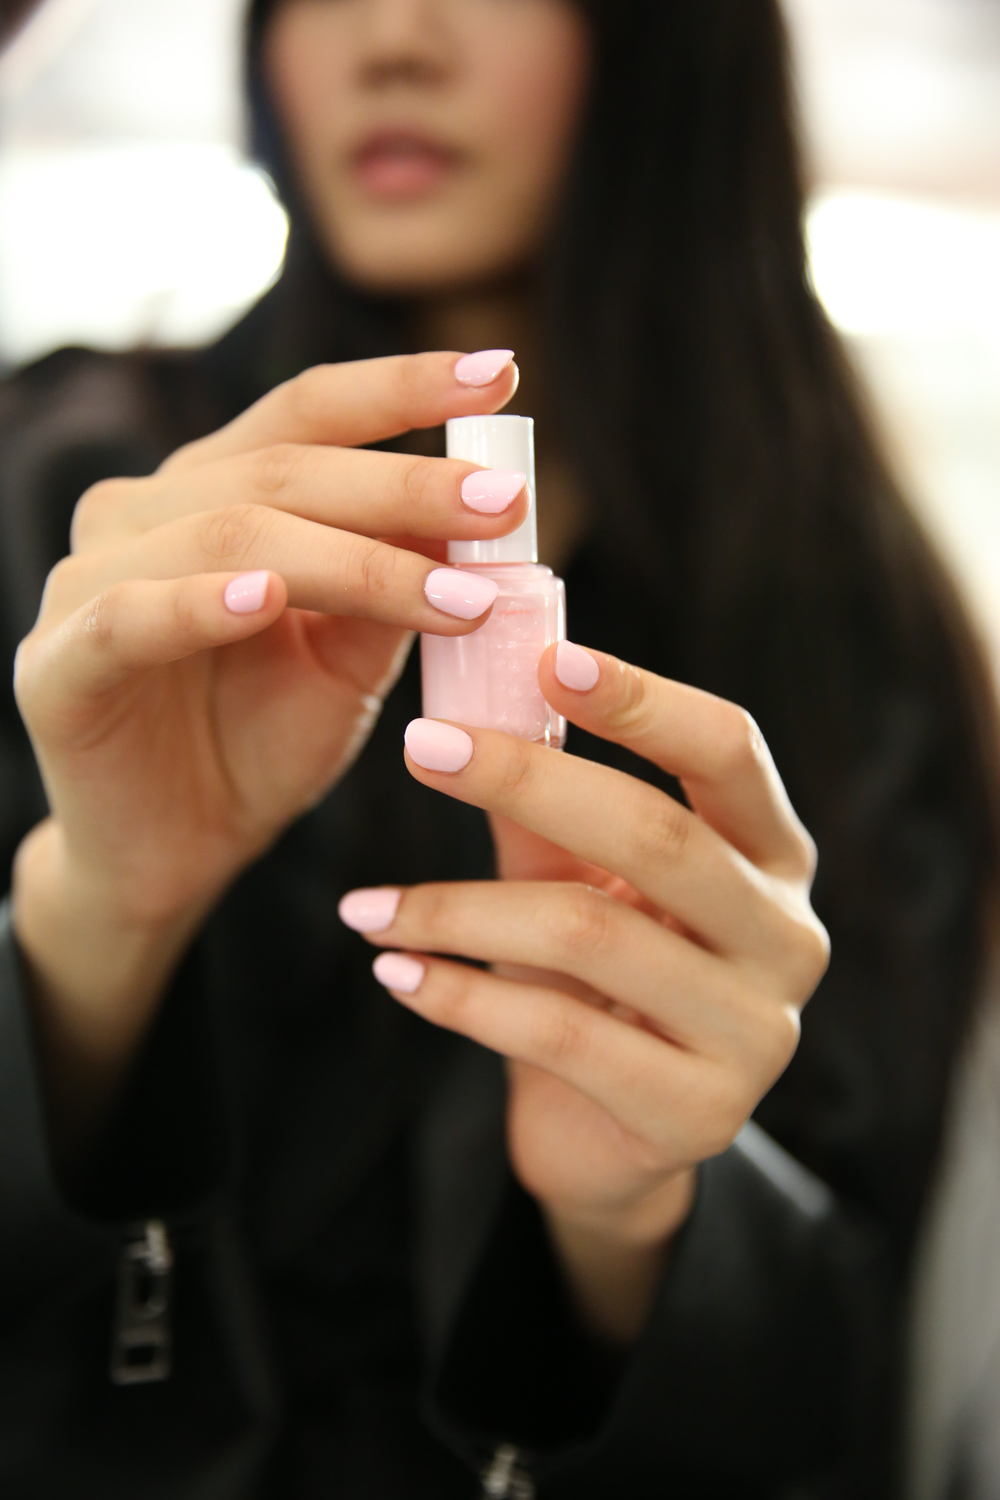 <p>To complement the Naeem Khan Spring/Summer 2015 line, Julie Kandalec for Essie created a nail look to represent the &lsquo;Naeem Khan girl&rsquo;&mdash;elegant and done up, but not too glamorous. Photo courtesy of Essie.&nbsp;</p>